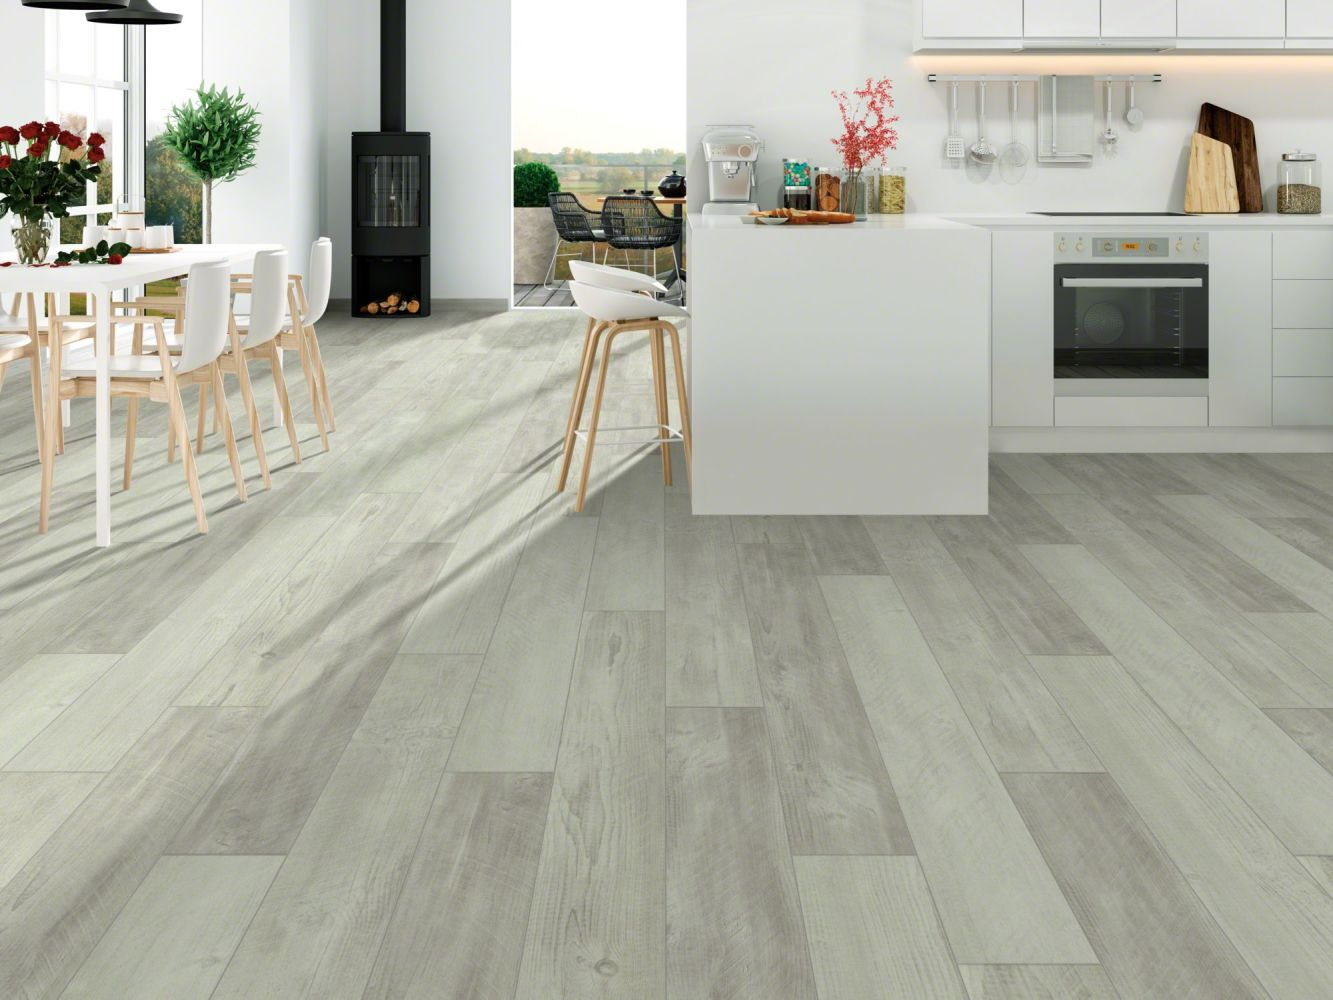 Shaw Floors Resilient Property Solutions Moonlit Pine 720c Plus Distressed Pine 00164_514RG